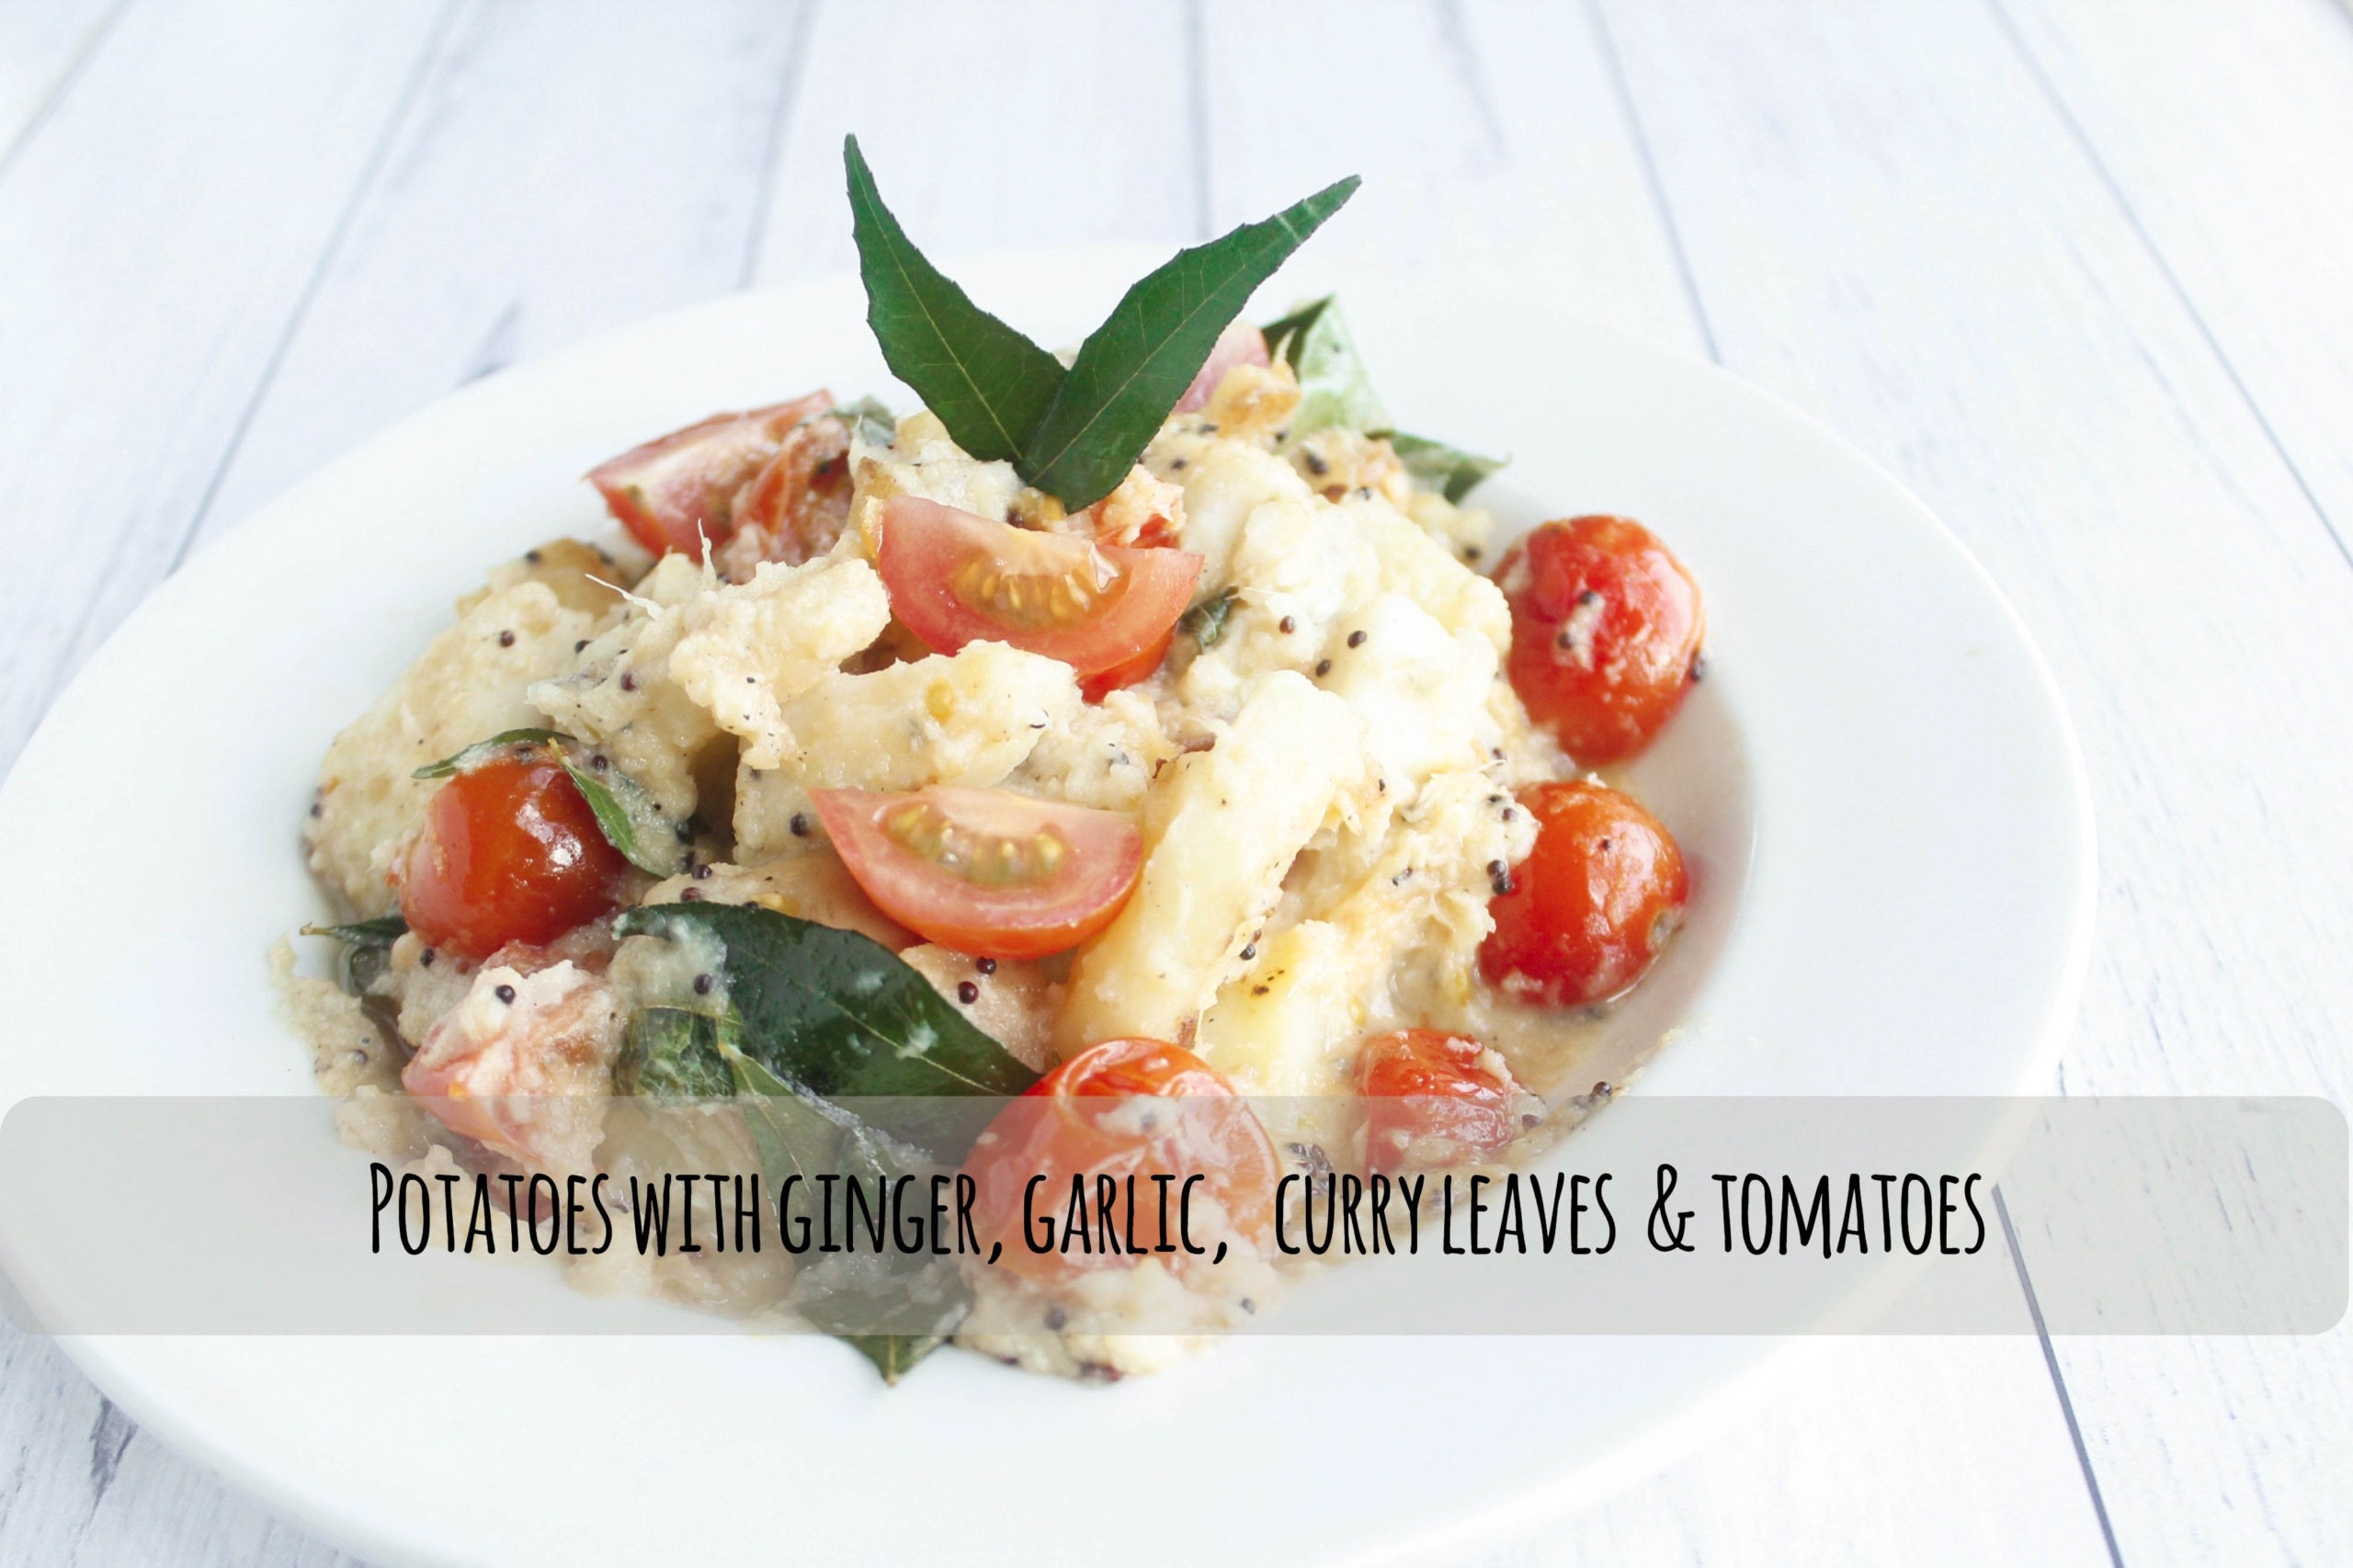 Potato, ginger, garlic, curry leaves and tomato